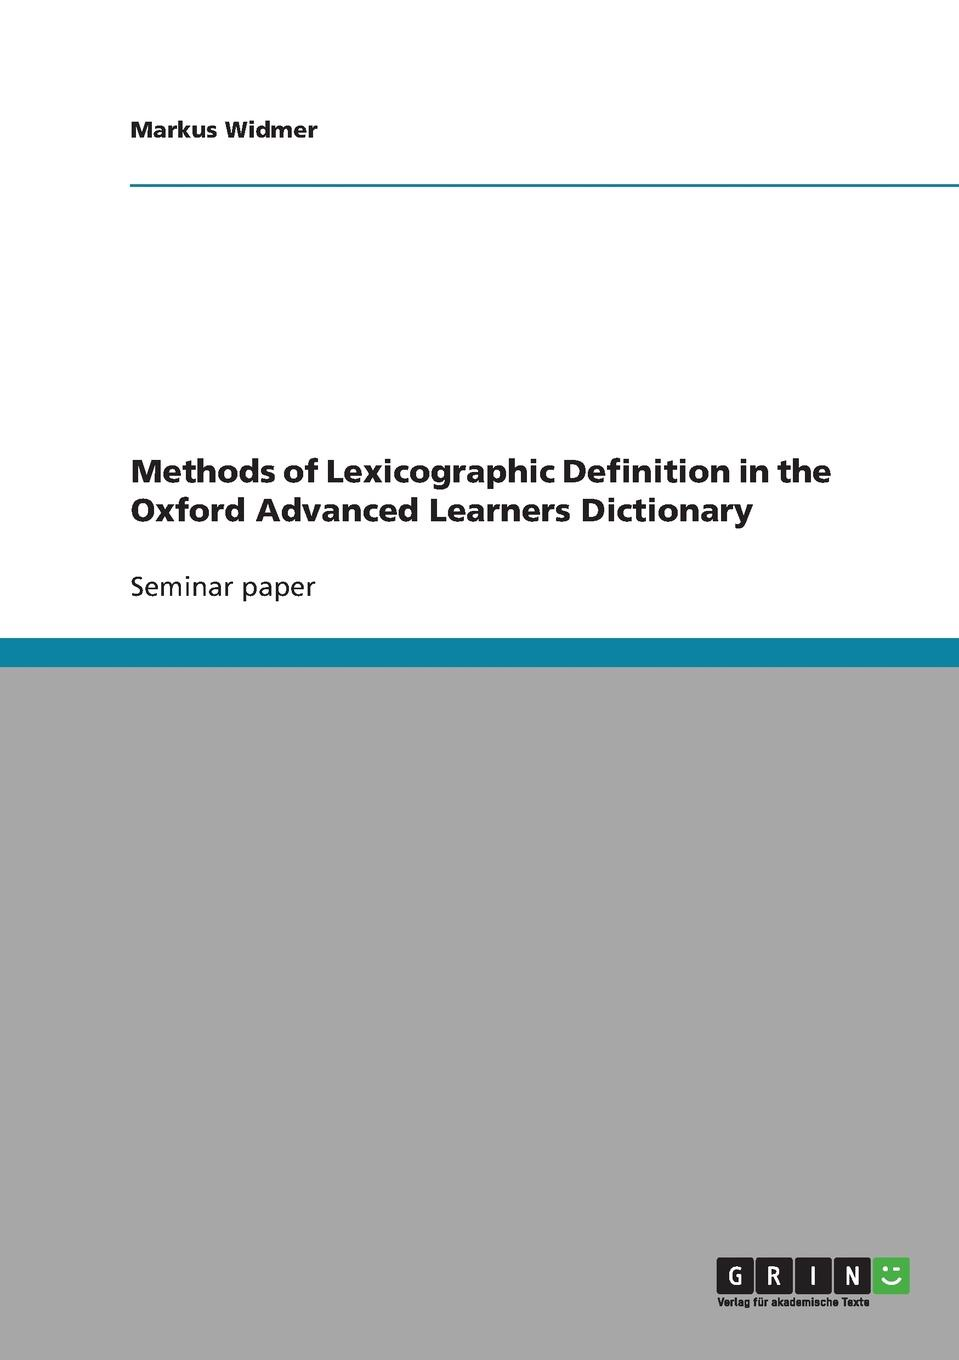 Markus Widmer Methods of Lexicographic Definition in the Oxford Advanced Learners Dictionary oxford advanced learner s dictionary 9th edition paperback with dvd and online access code